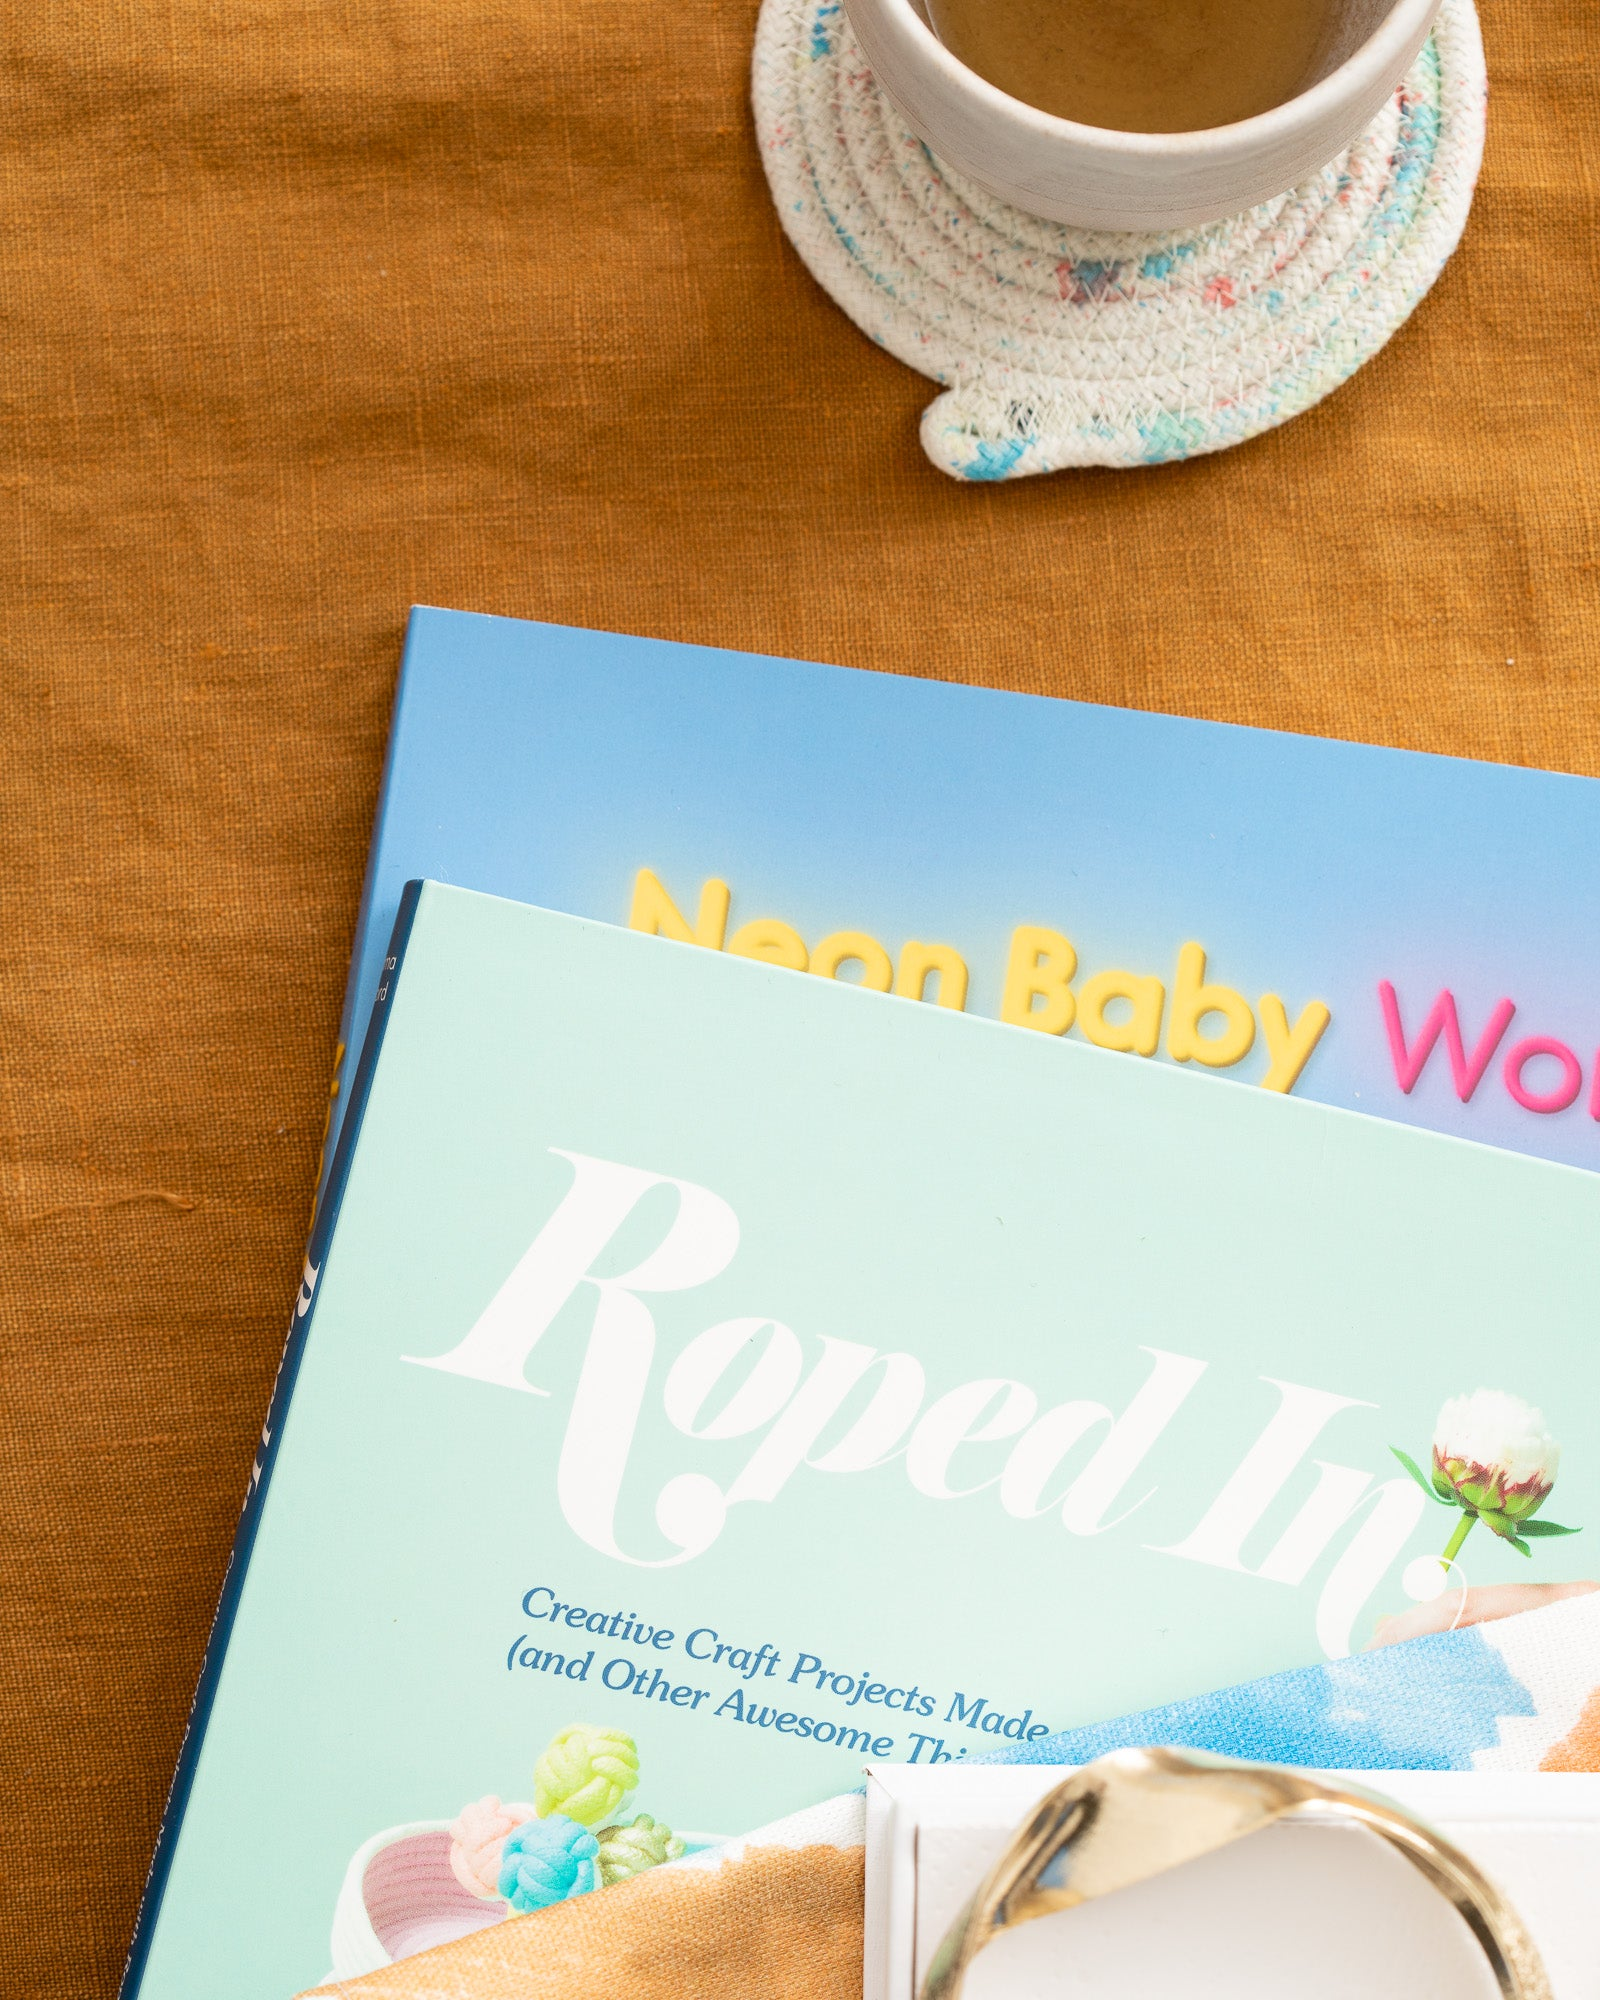 Electric Confetti - Neon Baby Words - Book